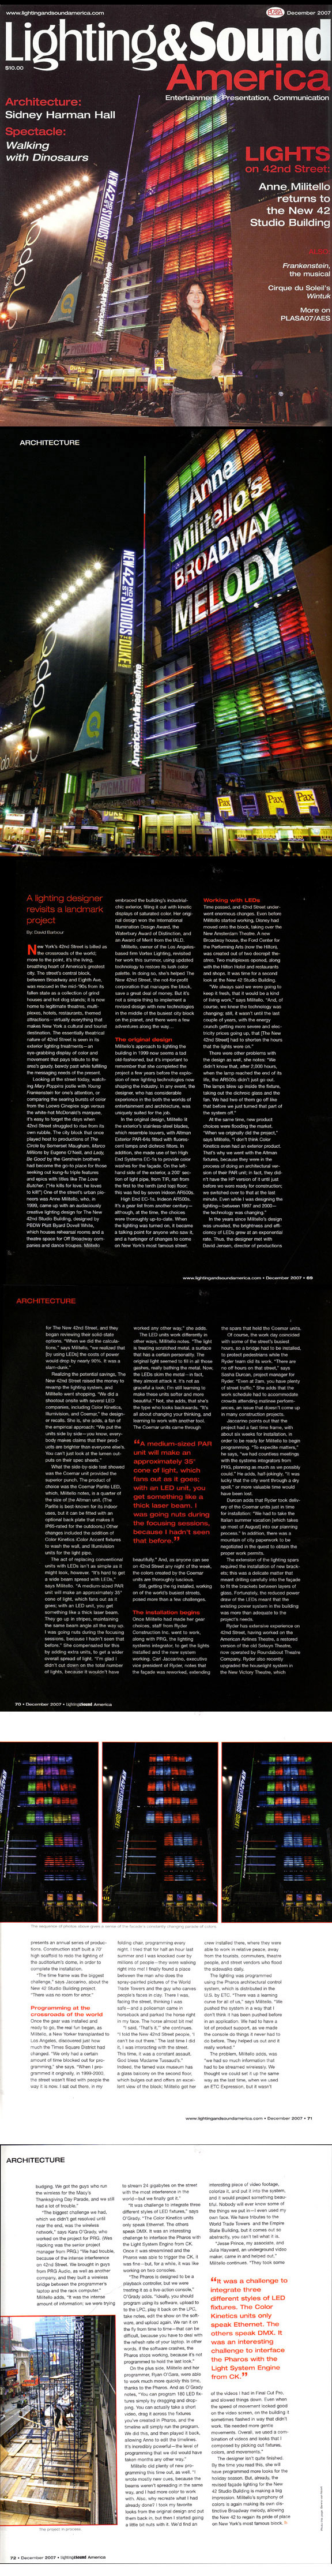 LIGHT & SOUND AMERICA | DECEMBER 2007